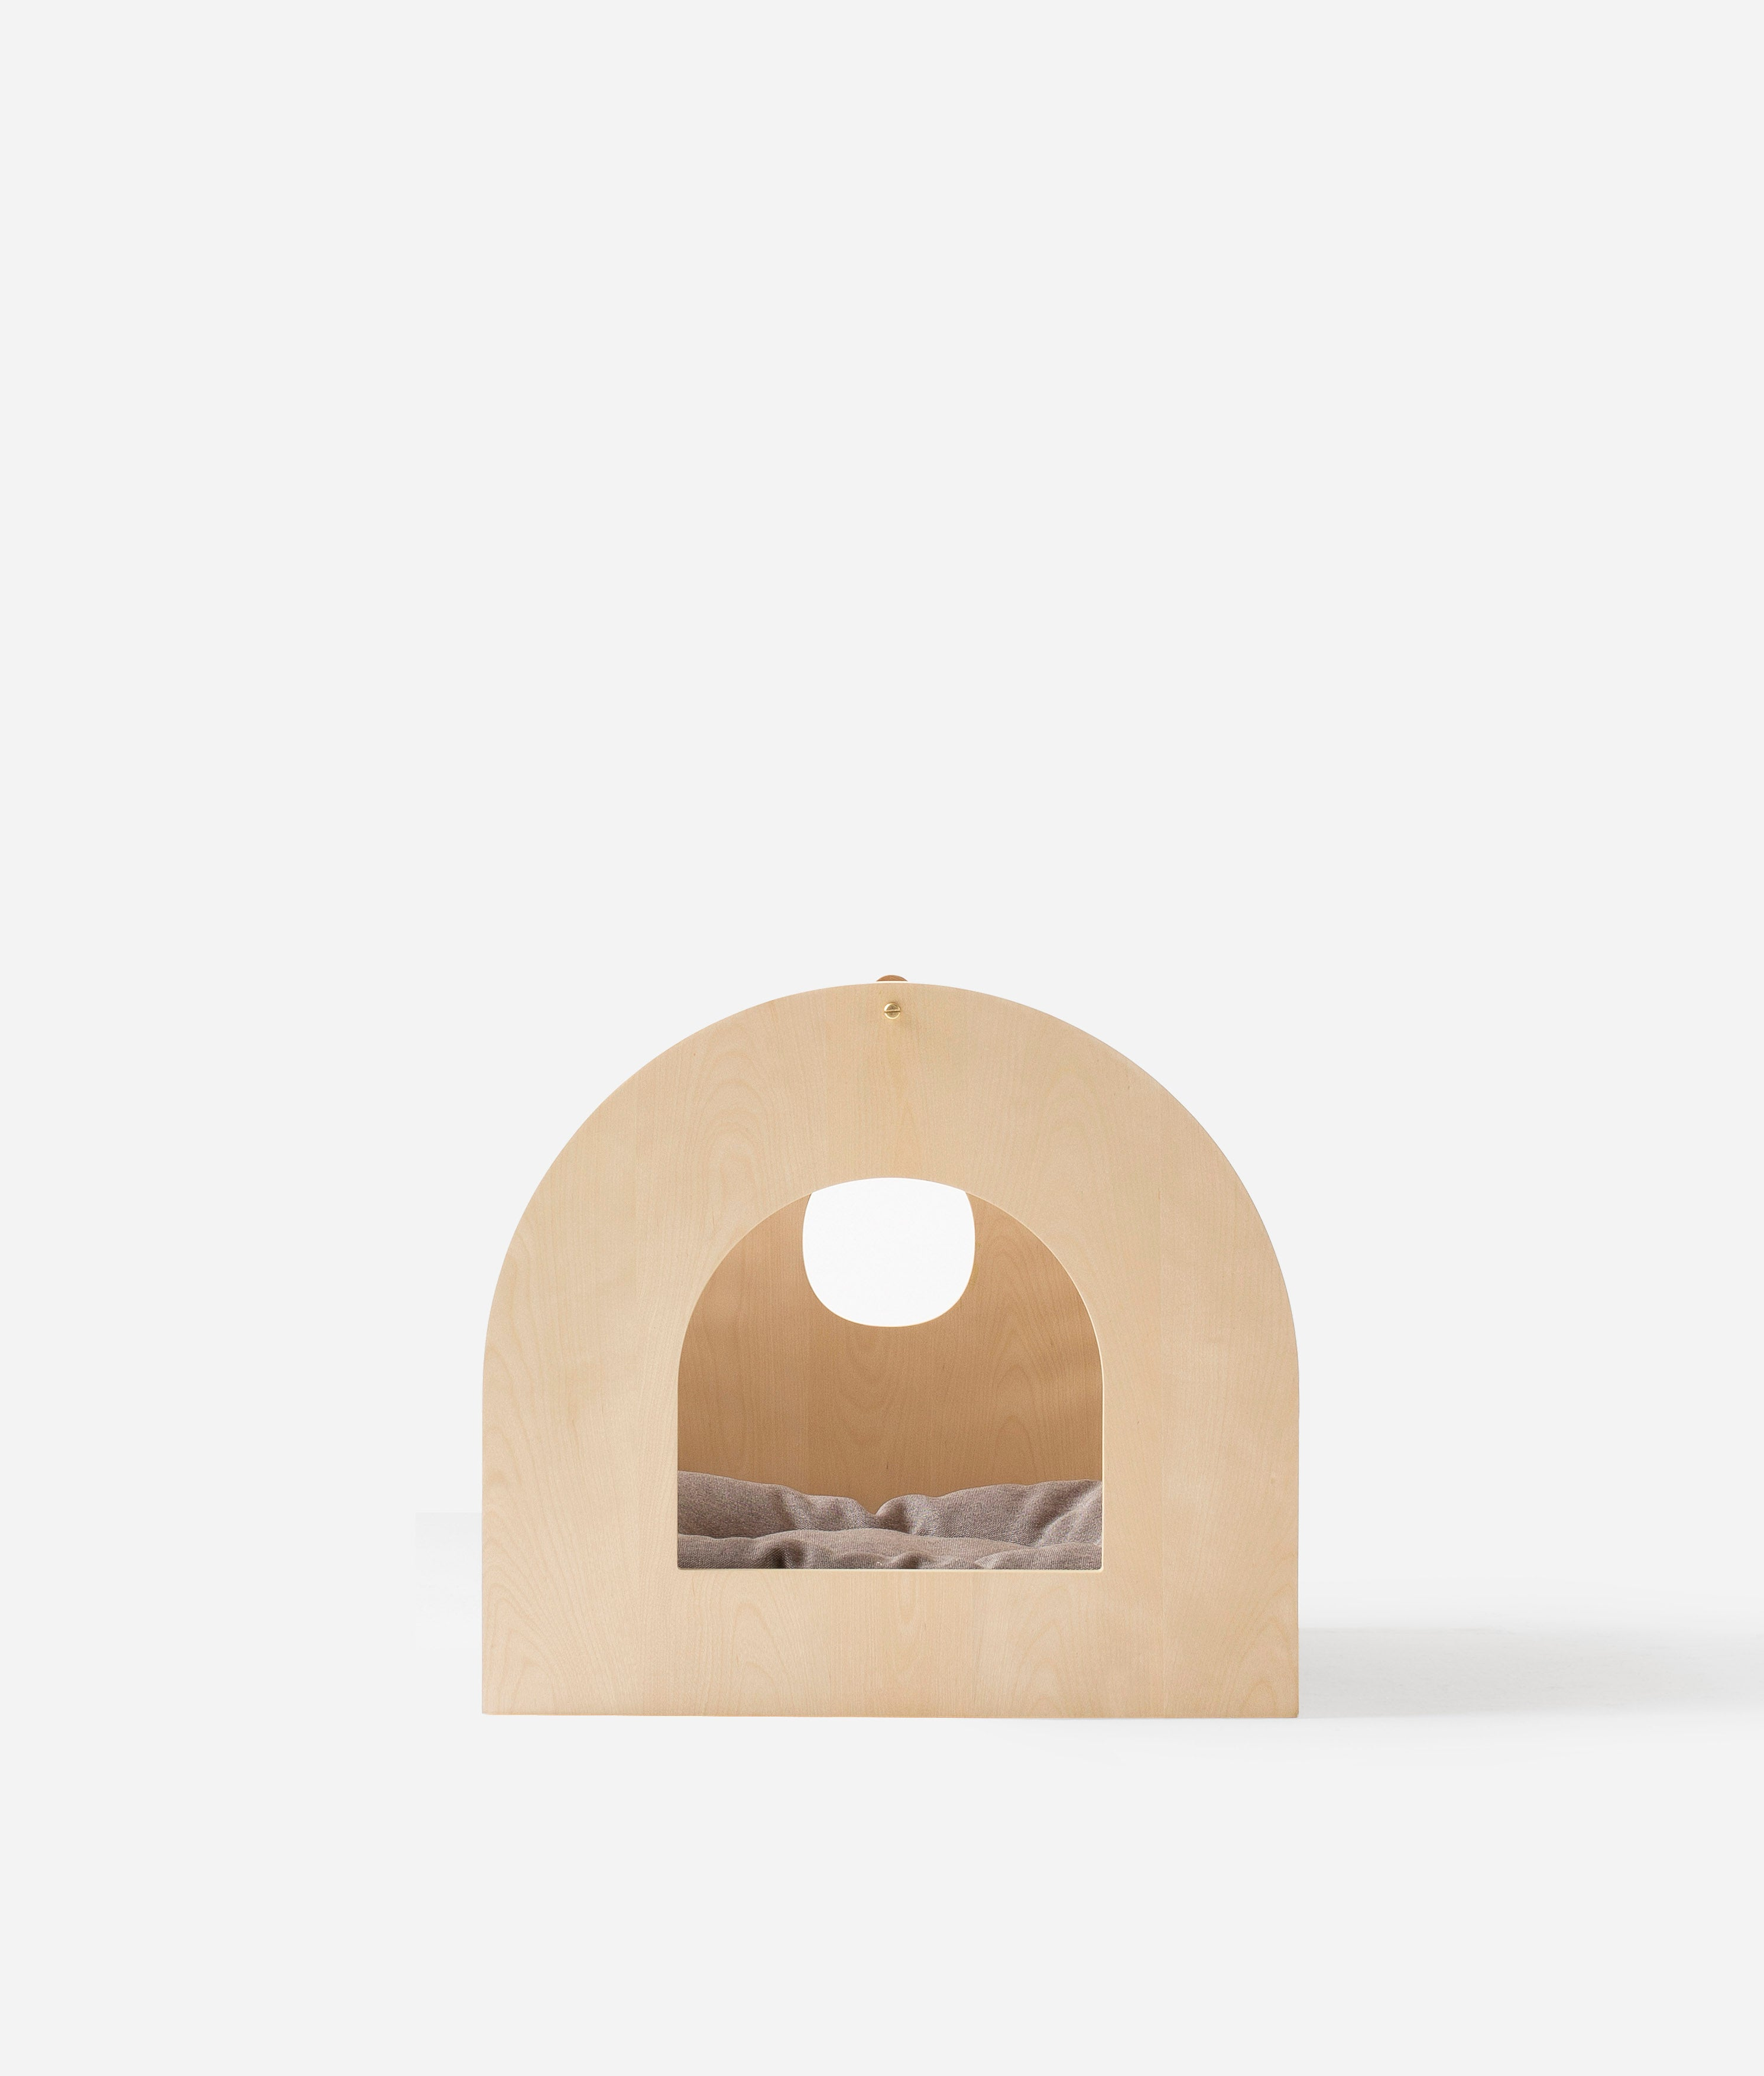 Ziinlife Knit-knit-pet house front